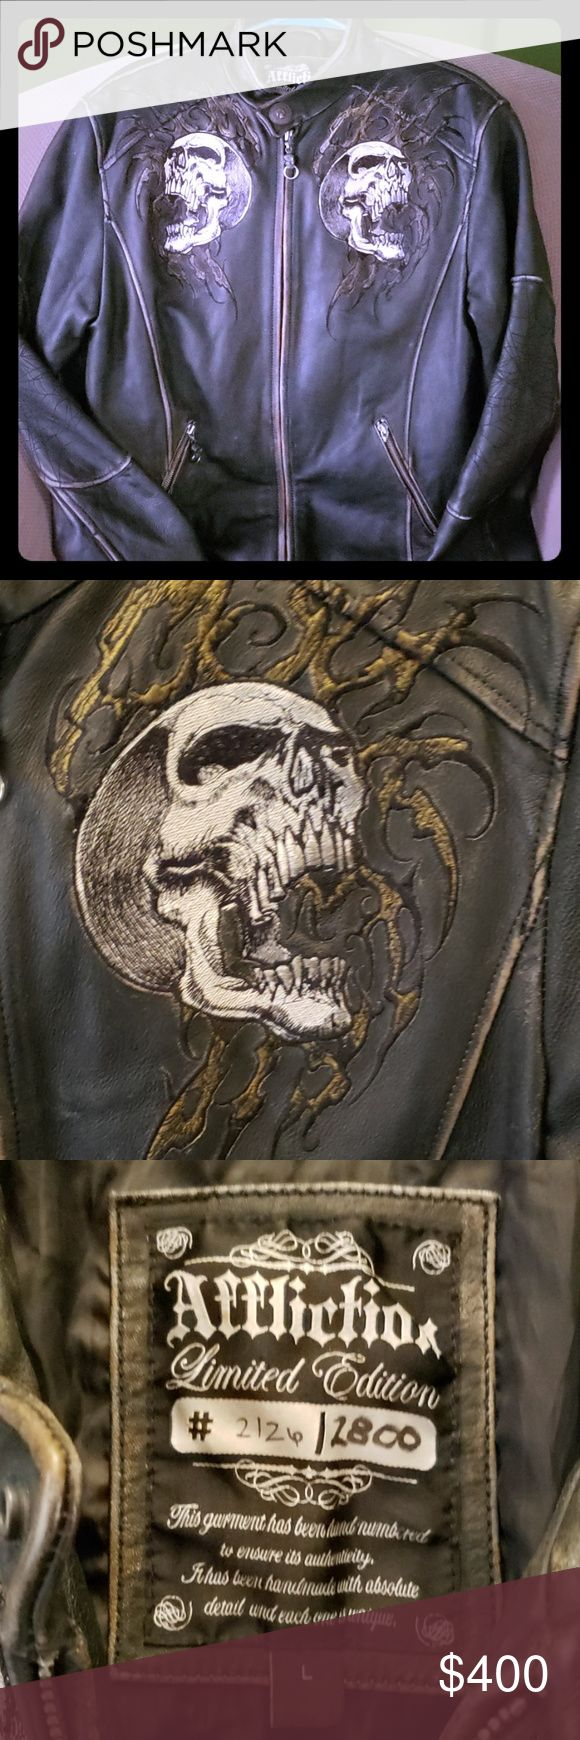 Mens Affliction black leather jacket Xl (With images